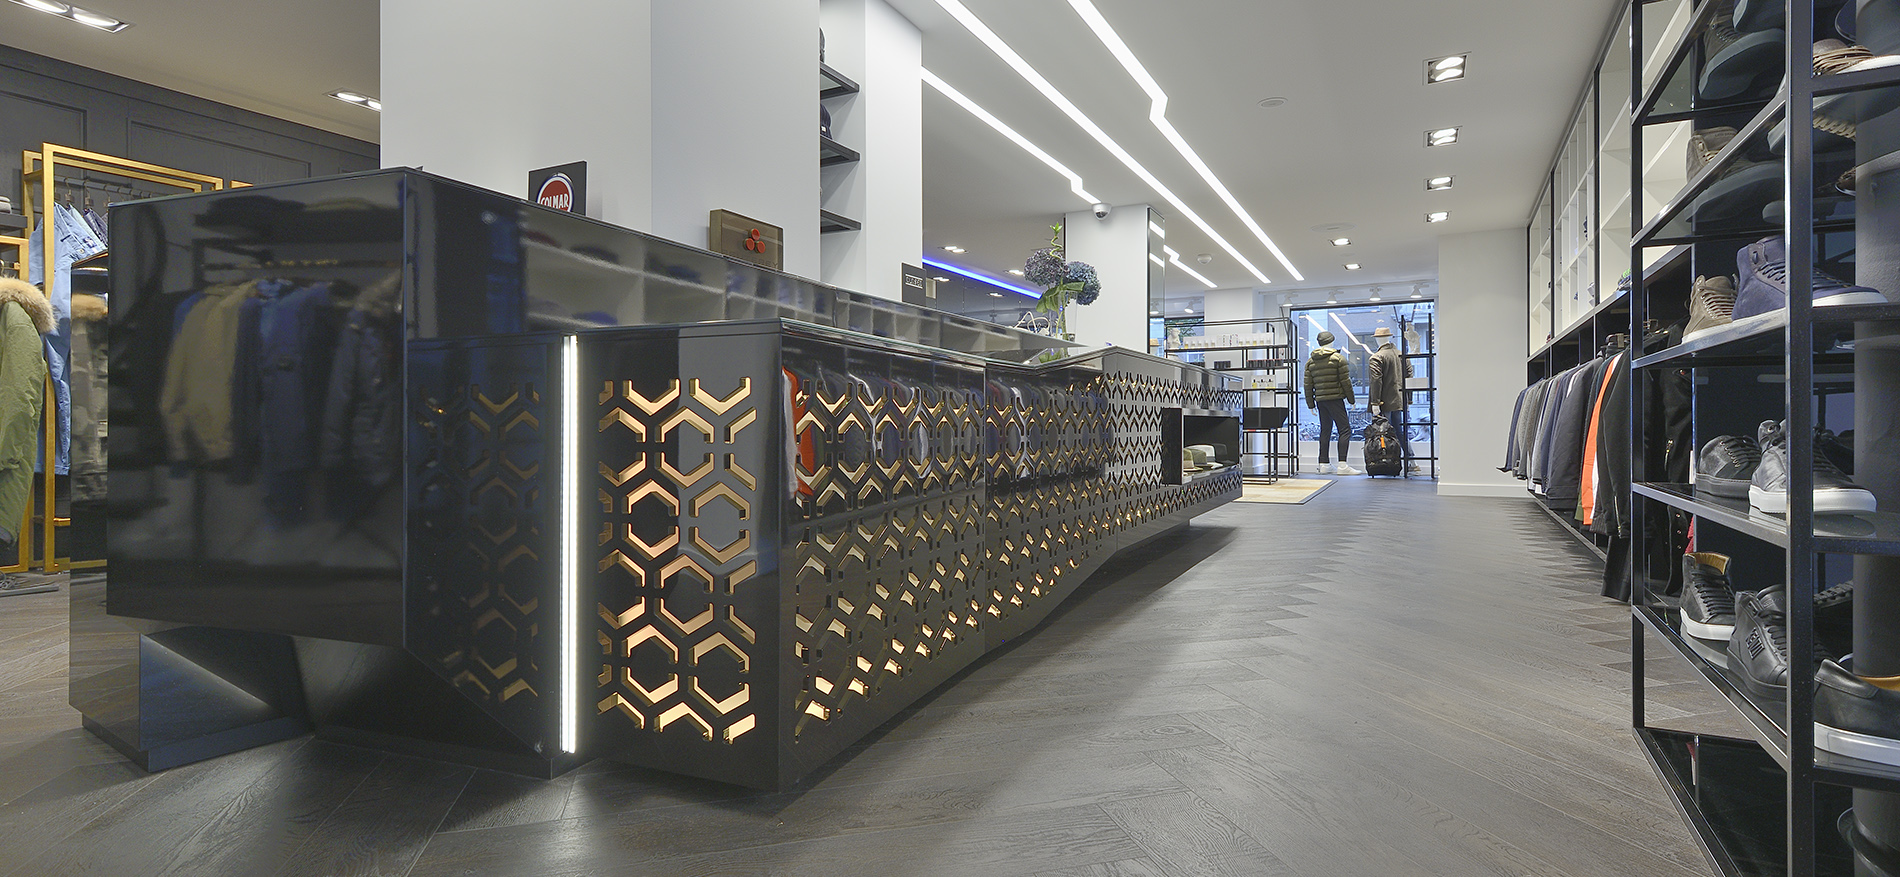 Luxus ladeneinrichtung mode kings square amsterdam for Interieur winkel